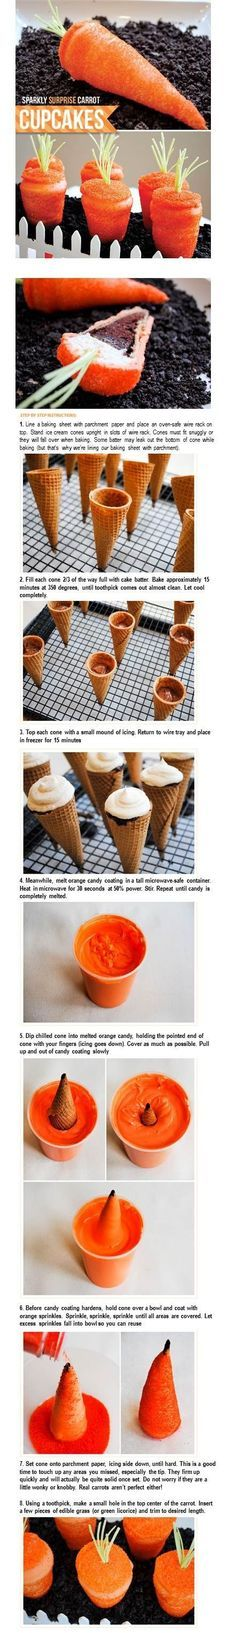 Carrot look cupcakes http://sulia.com/my_thoughts/bdbb016f-76eb-485b-a8a1-af53ad18d15b/?source=pin&action=share&btn=big&form_factor=desktop&sharer_id=125502693&is_sharer_author=true&pinner=125502693